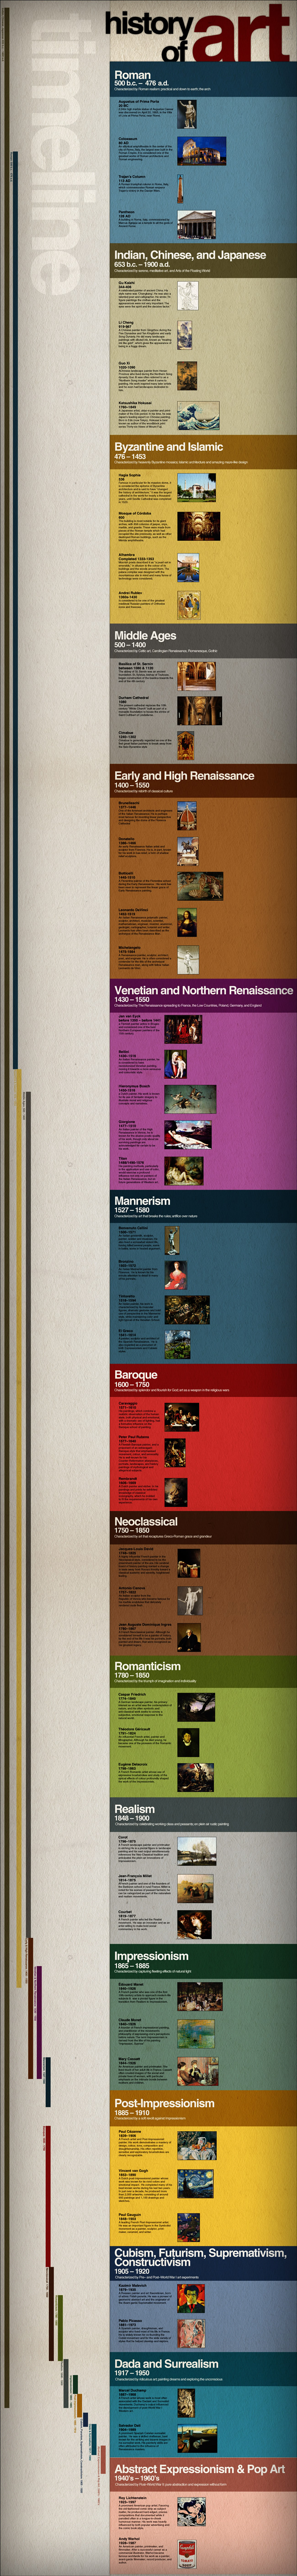 Timeline History Of Art Up Through Our Modern Era